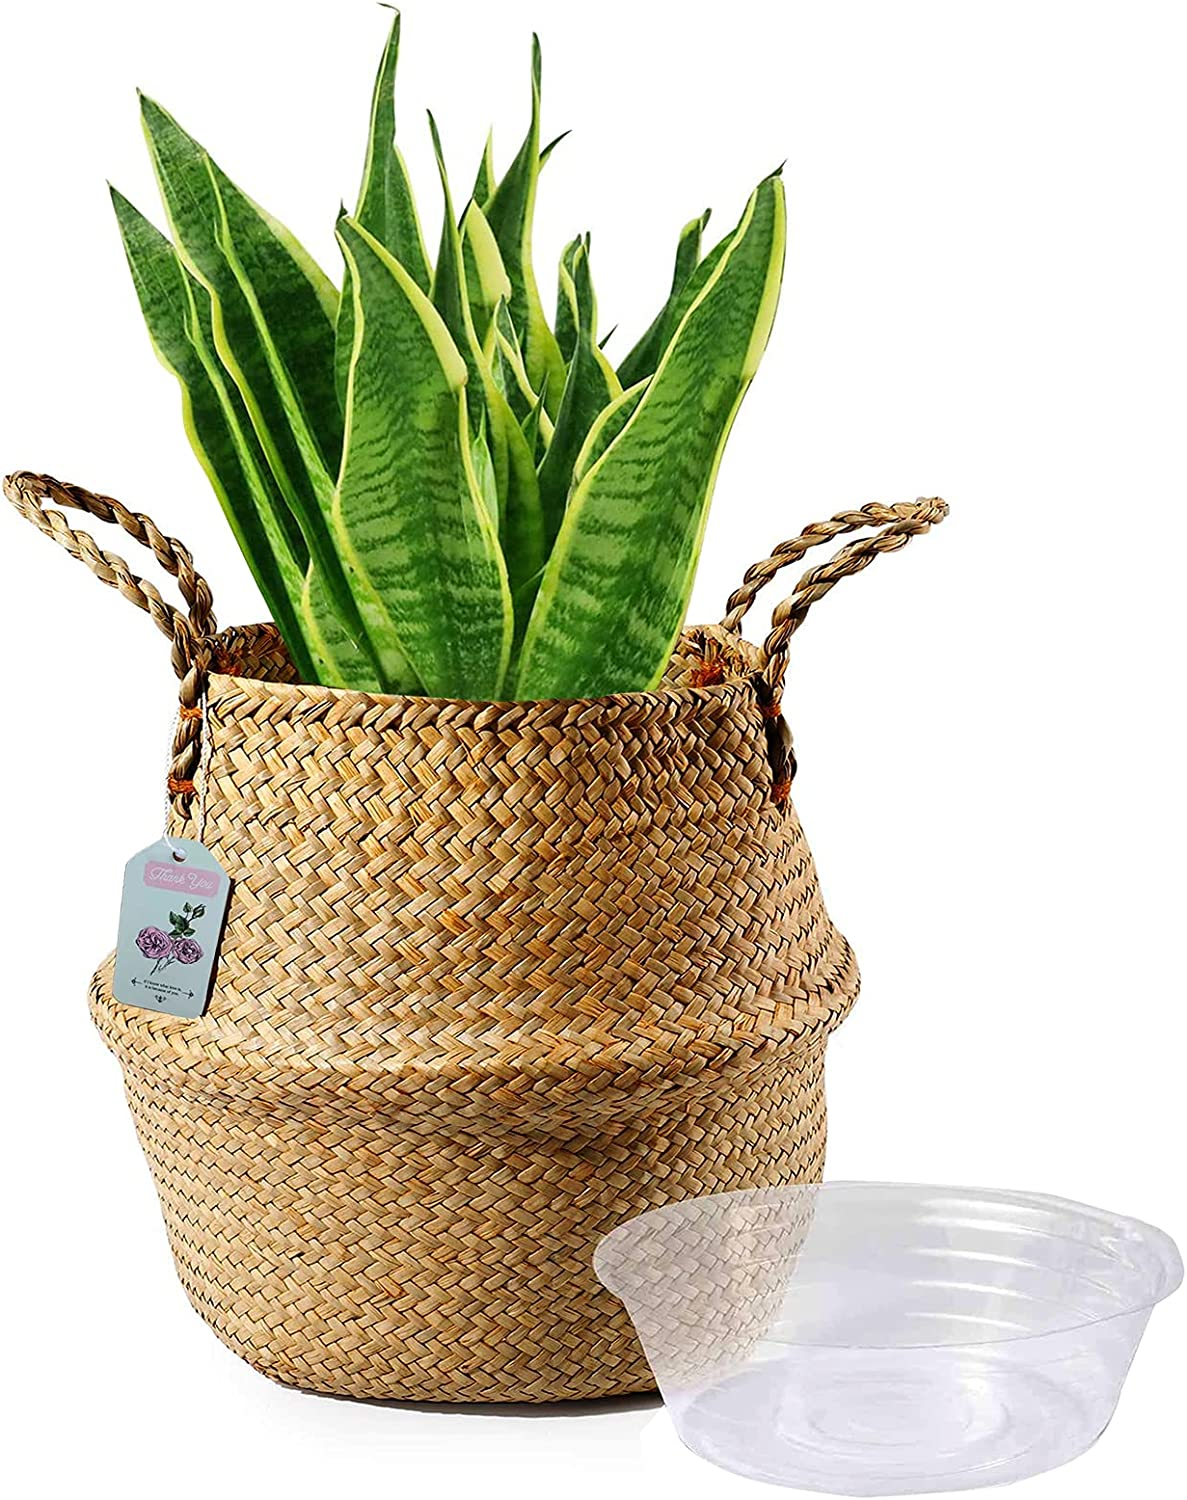 HUATIAN Seagrass Plant Basket Handmade Woven Seagrass Belly Basket for Storage, Laundry, Picnic, Plant Pot Cover, Grocery and Toy Storage Home Decor